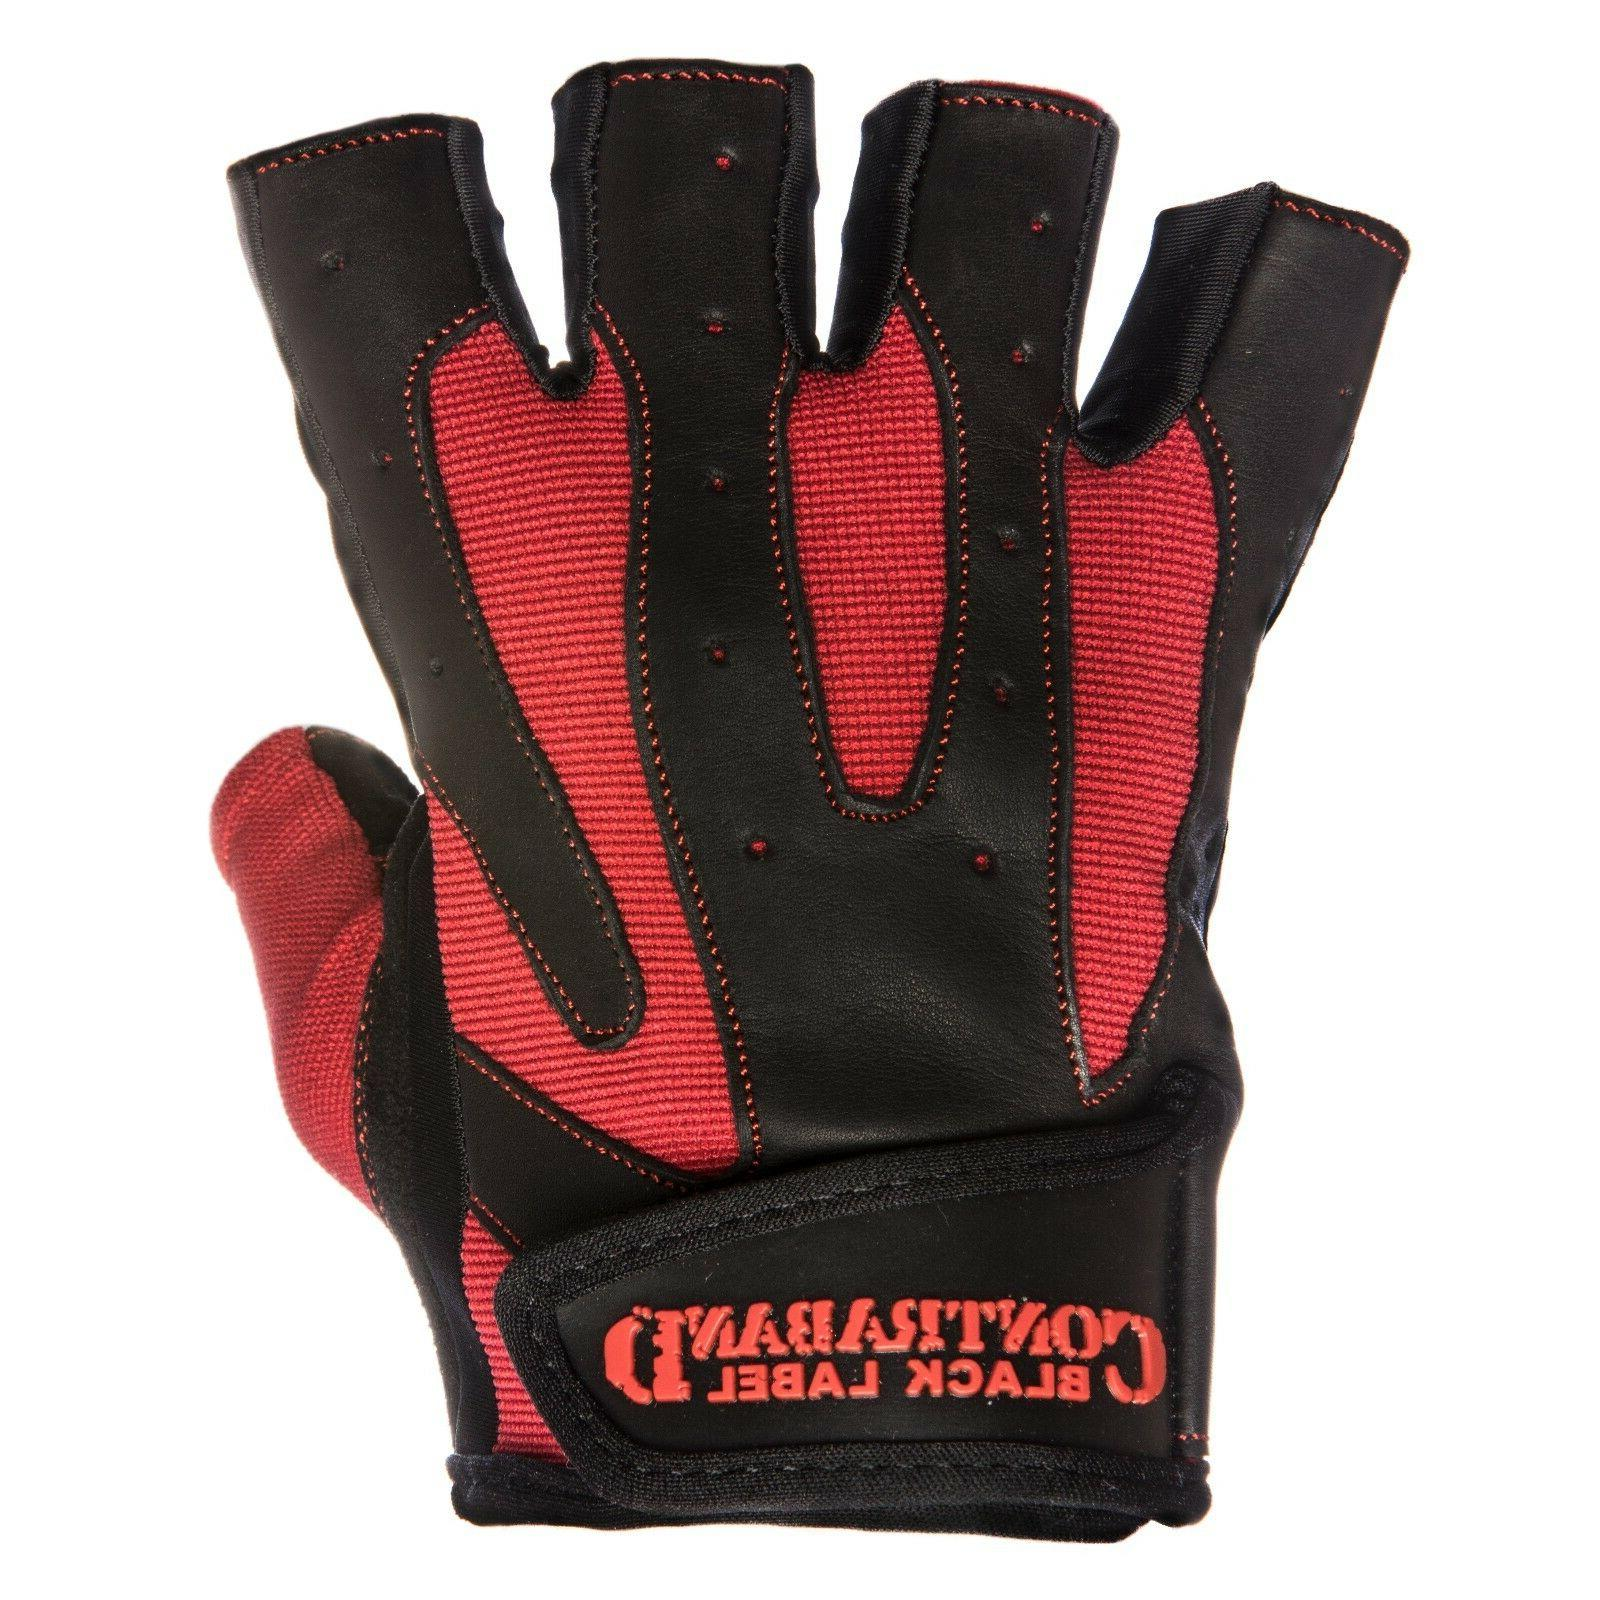 Contraband Label 5150 Pro Weight Gloves